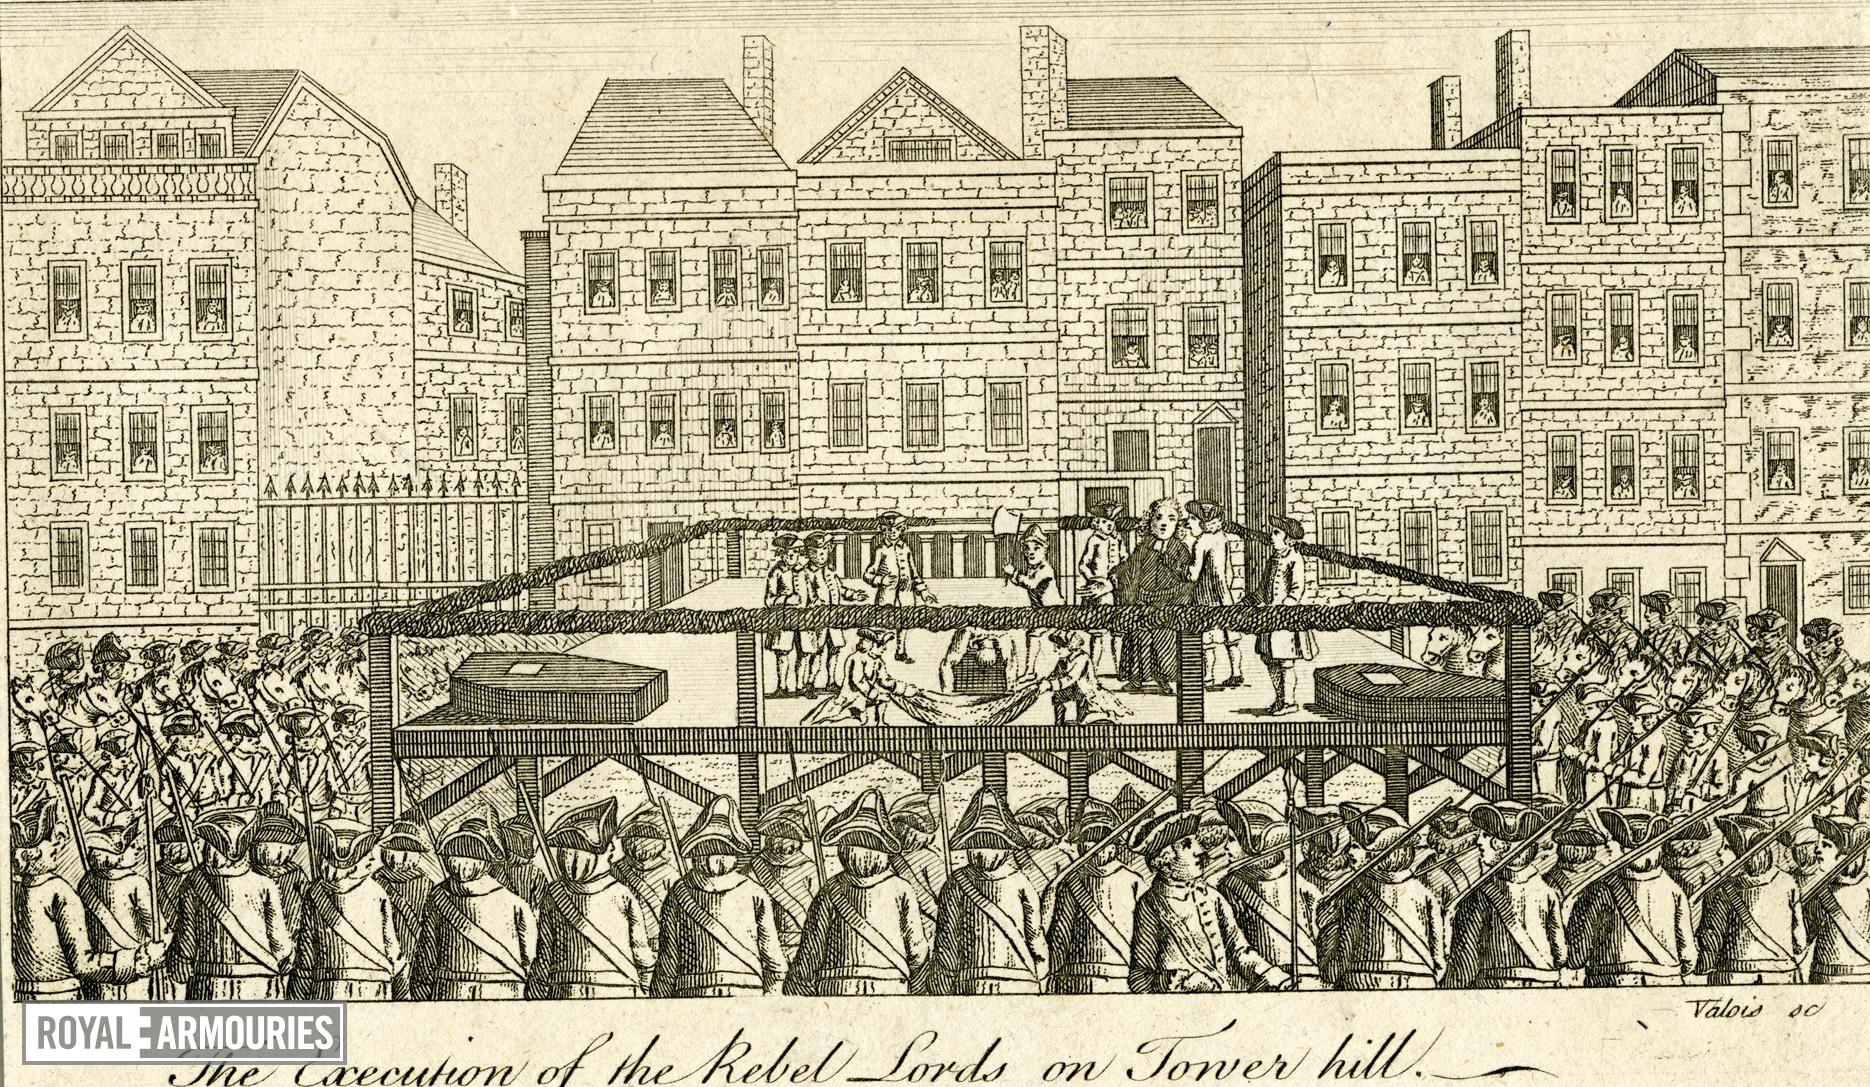 Execution of Jacobite Lords on Tower Hill